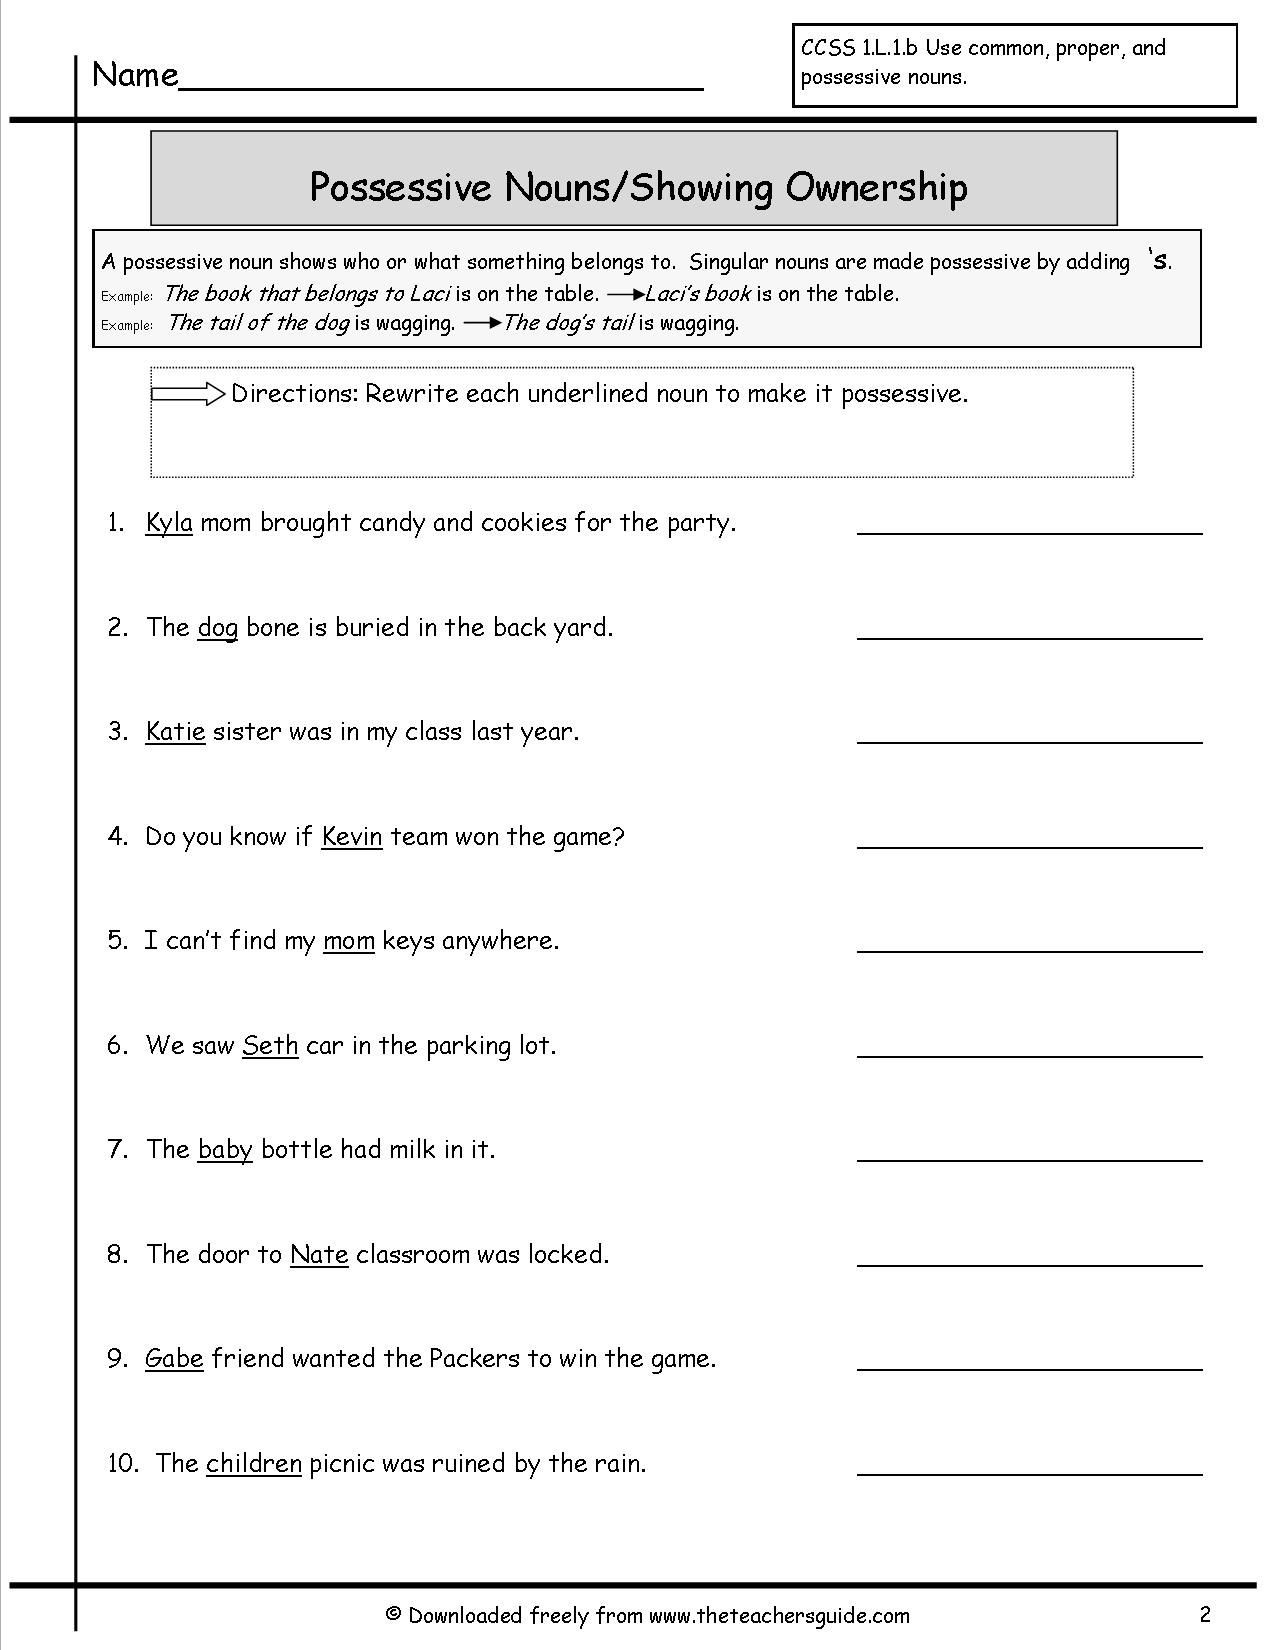 Possessive Nouns Printable Worksheets Possessive Nouns Worksheet